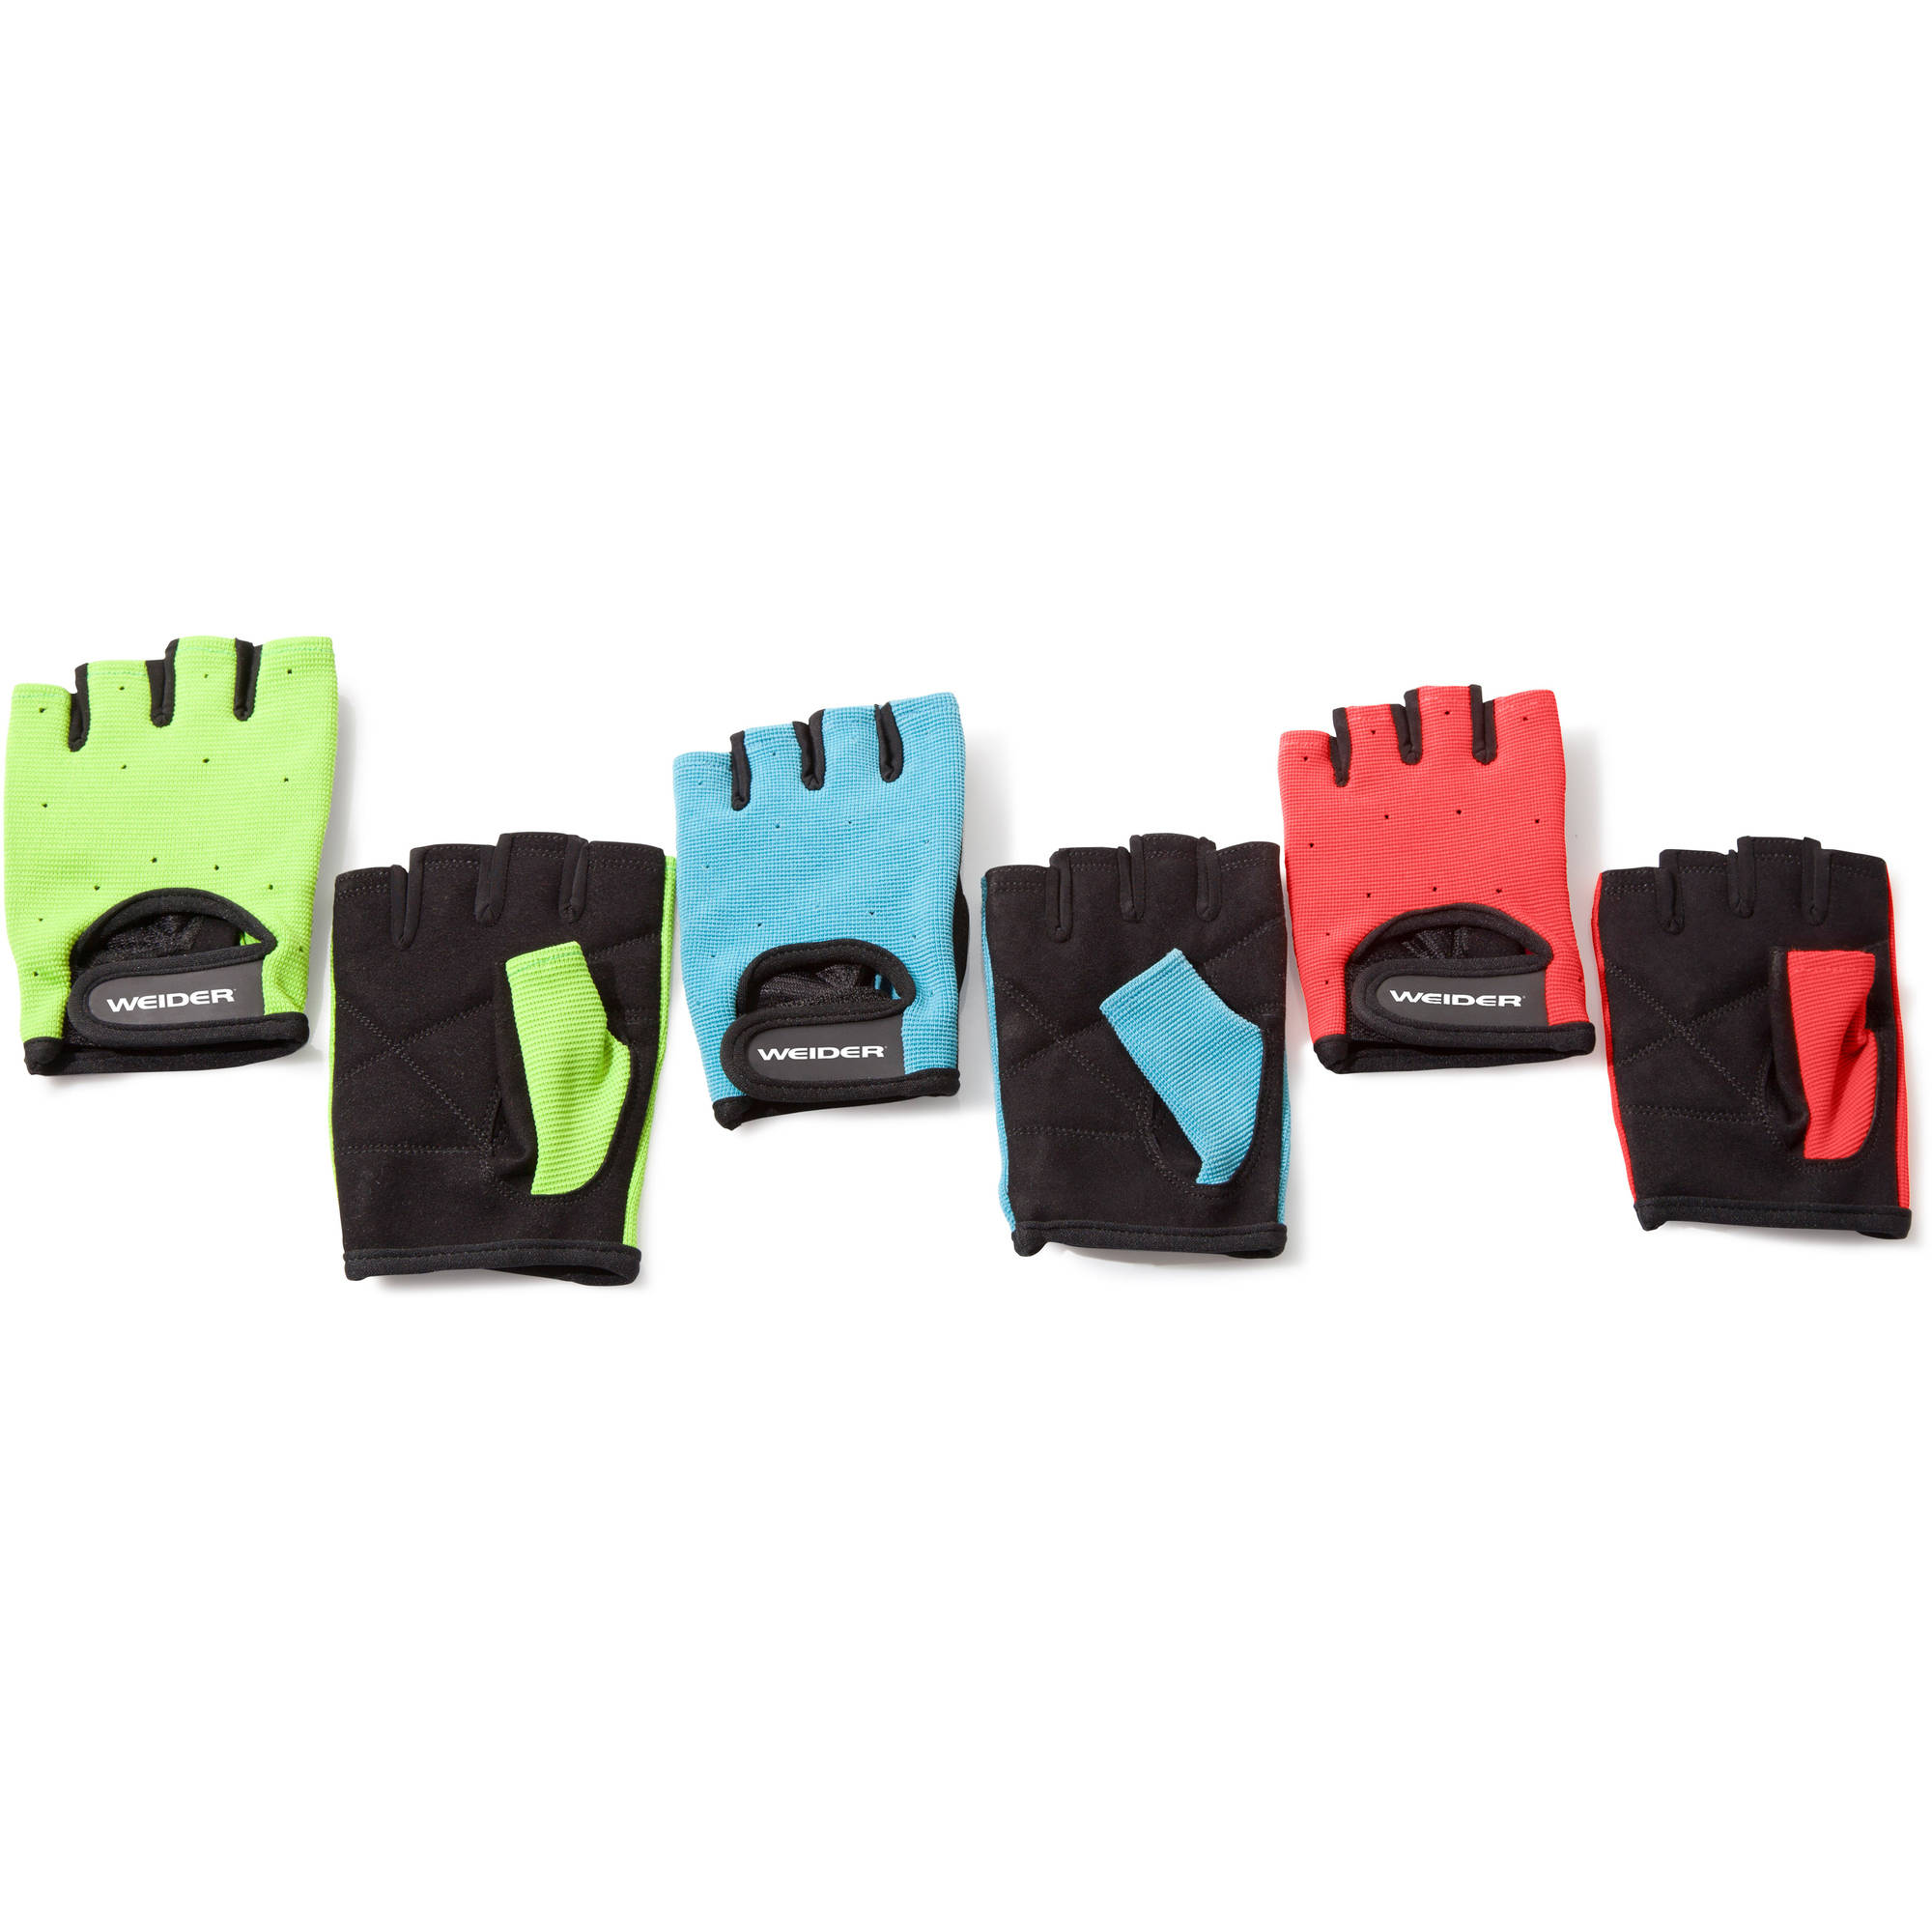 Weider Women's Training Gloves by Icon Health & Fitness Inc.